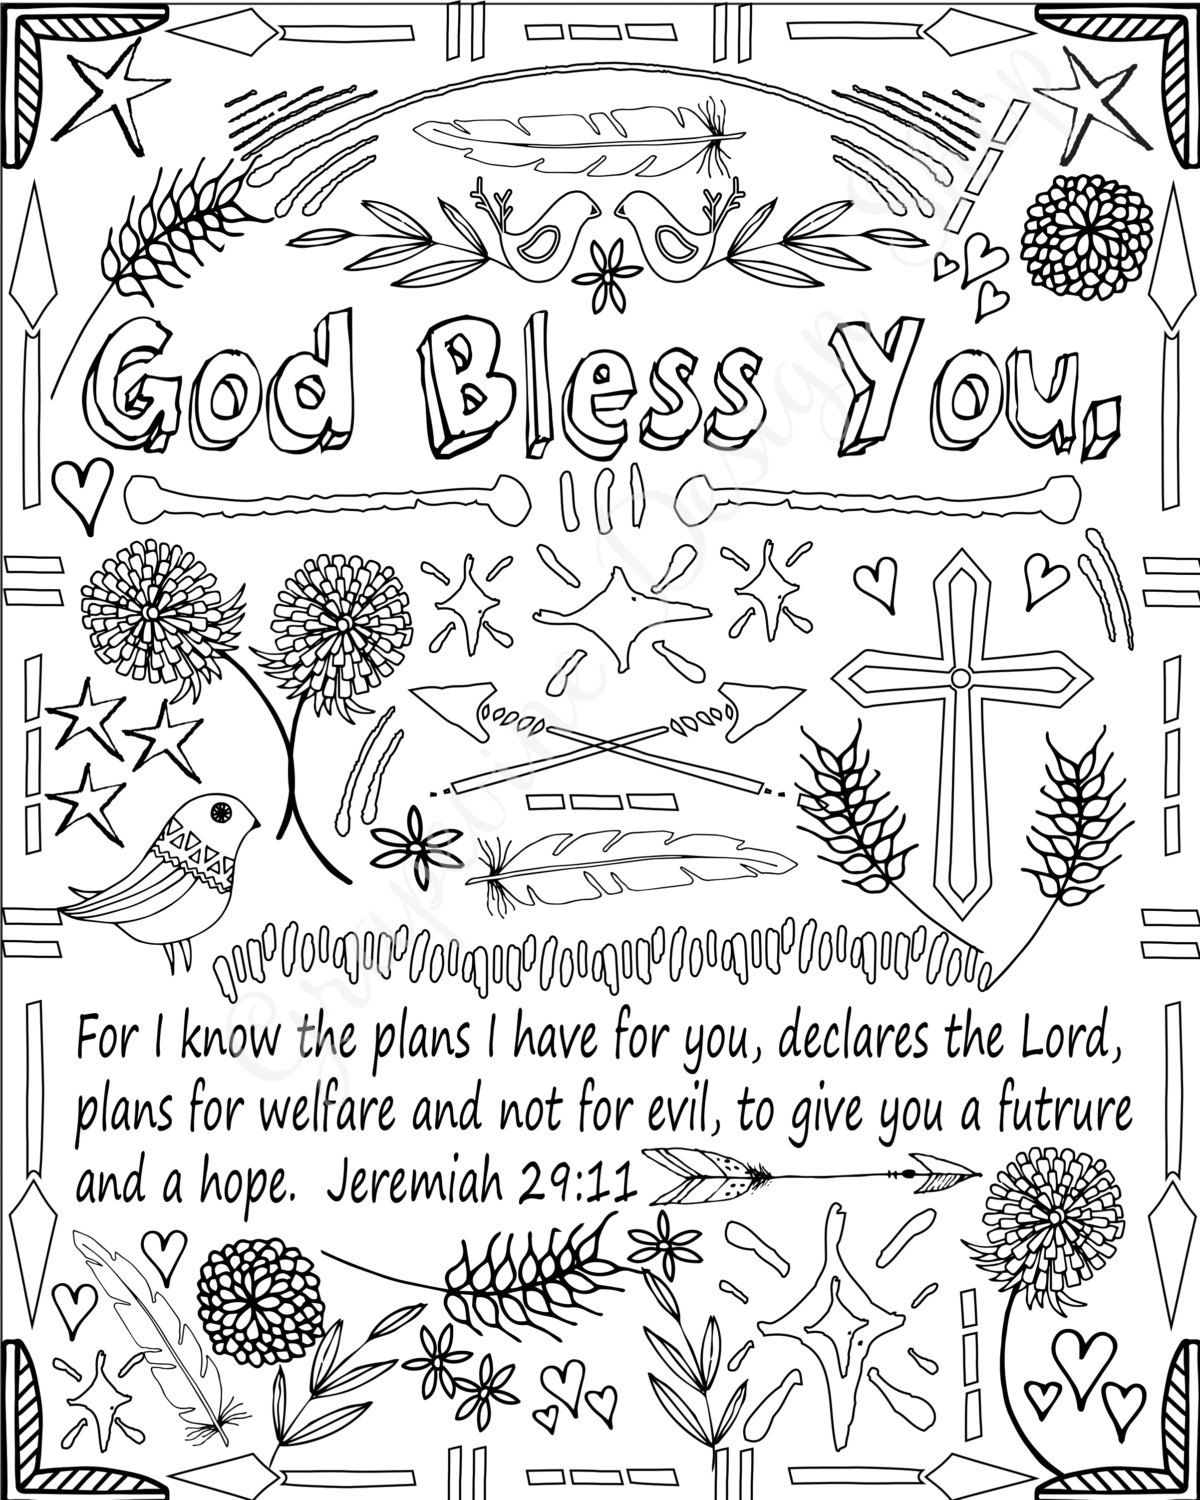 Encouraging words and Bible verse coloring pages. Set of 5